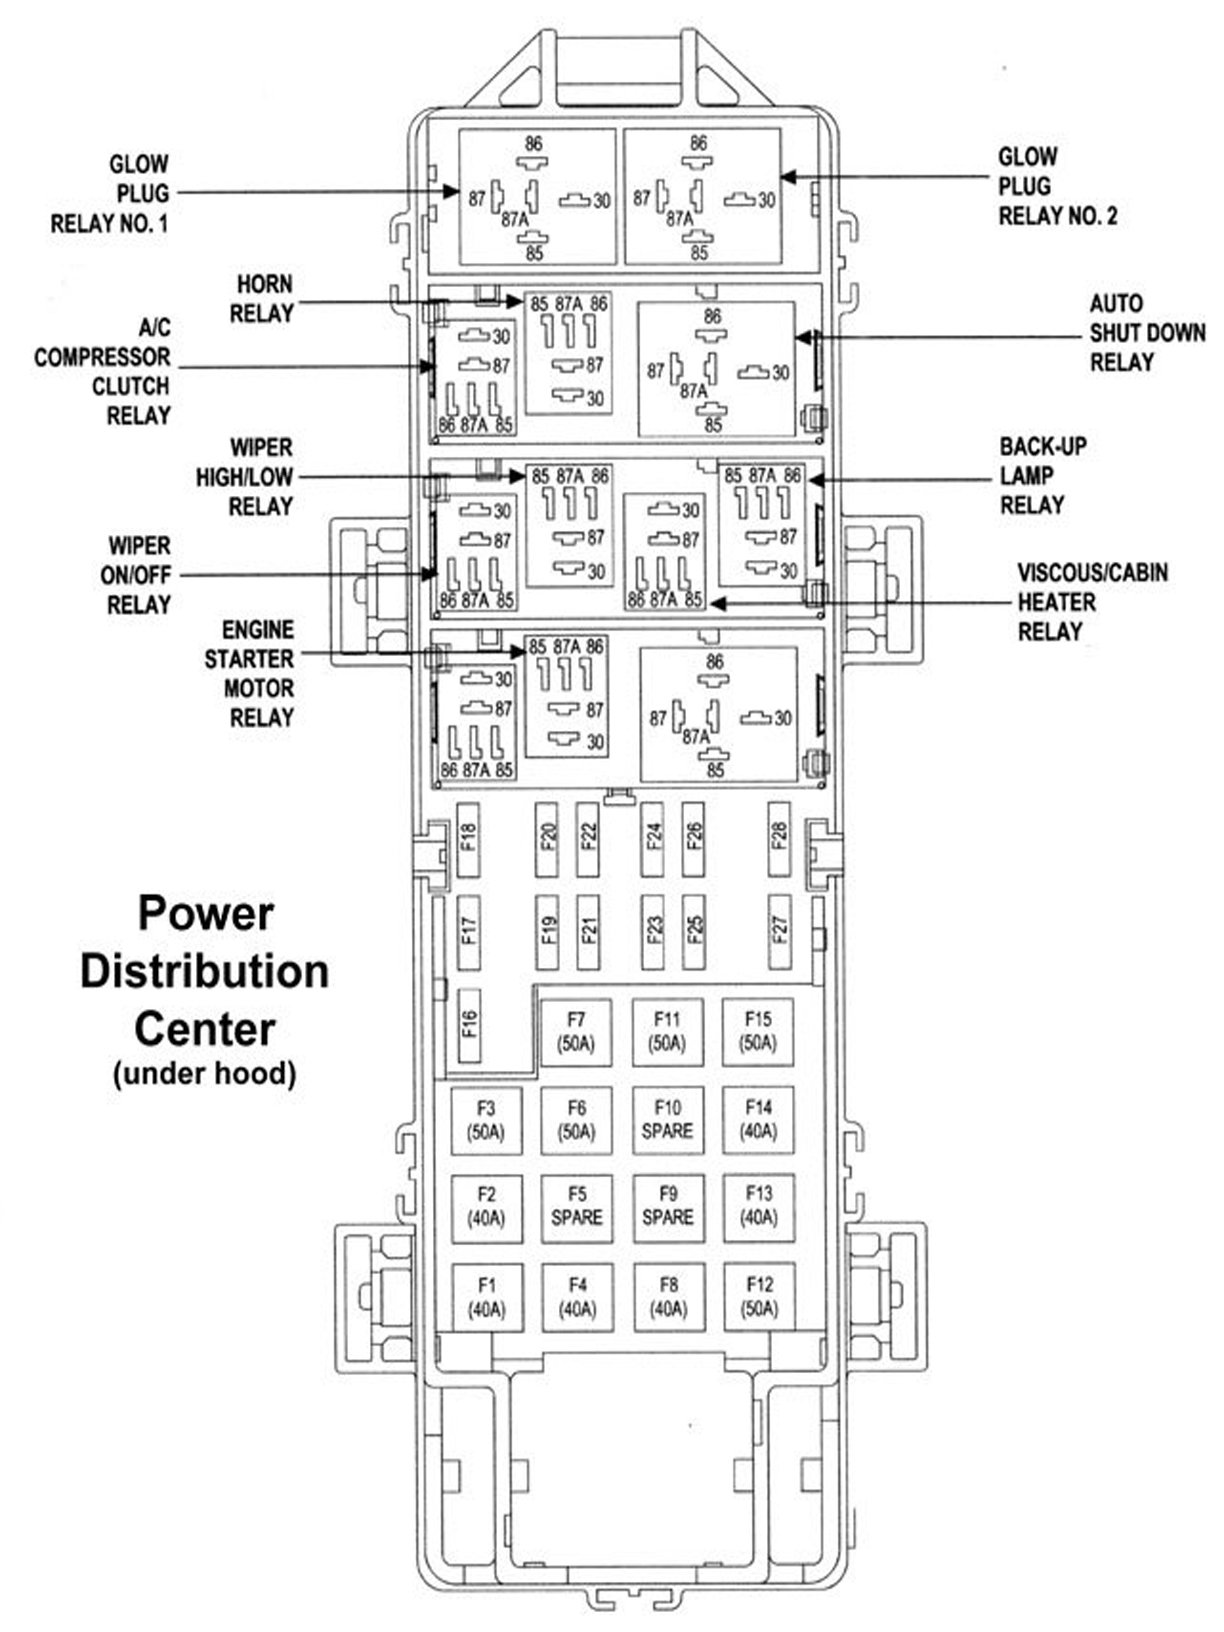 1999 jeep fuse box wiring diagram expert 1999 jeep wrangler fuse box 1999  jeep fuse box